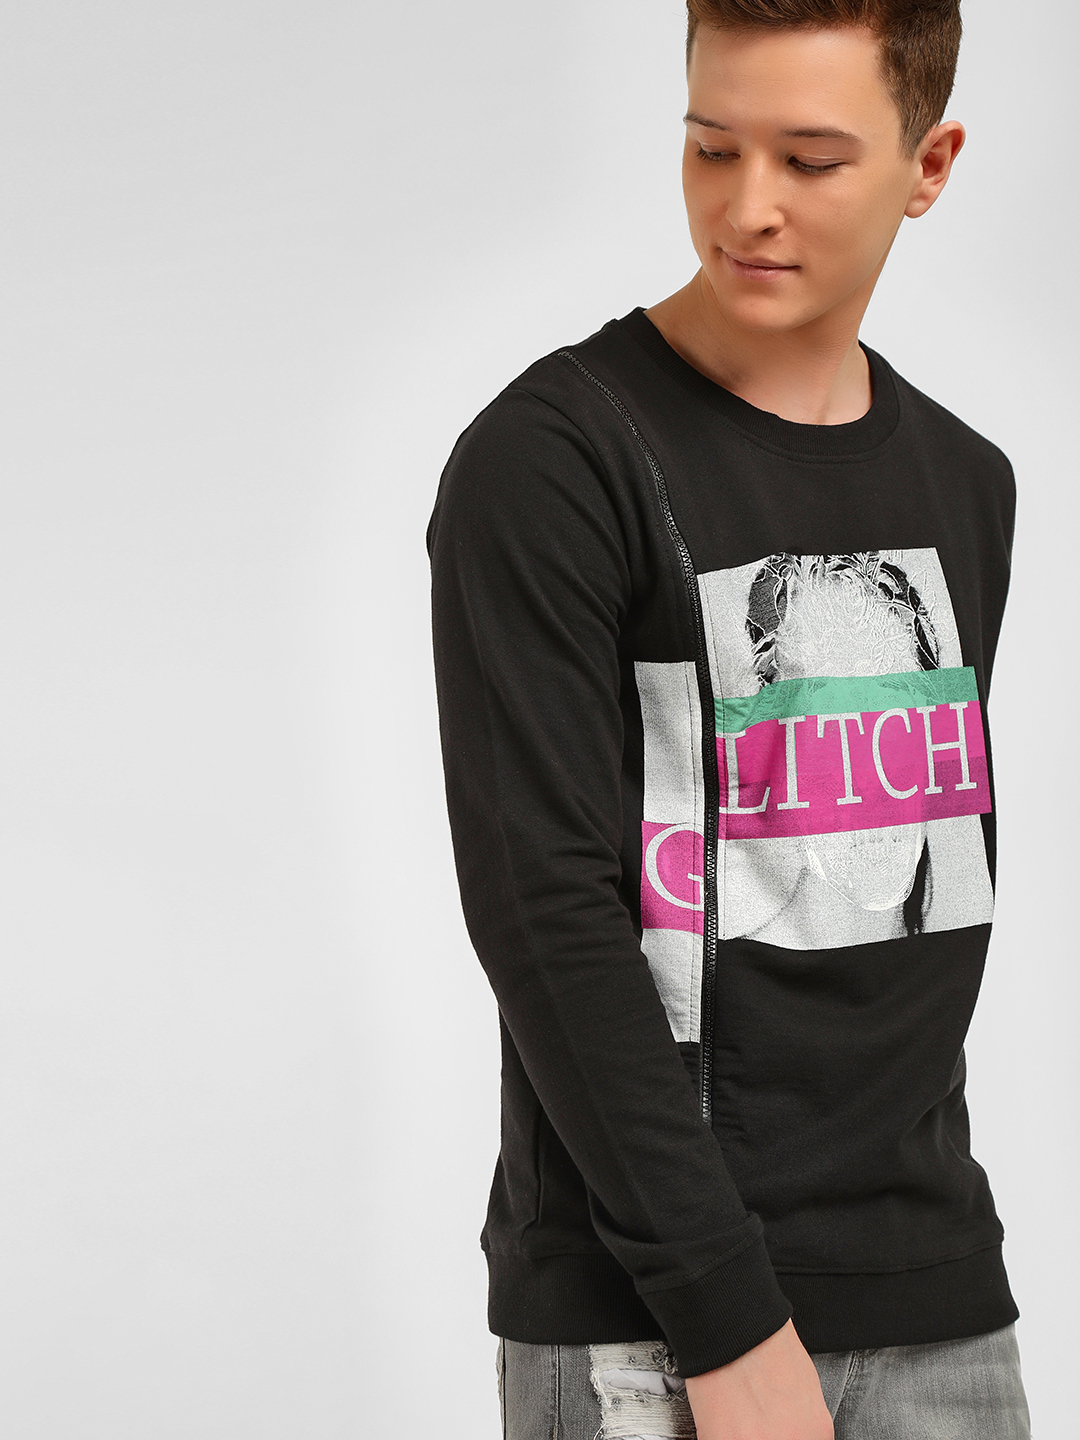 Kultprit Black Graphic Print Sweatshirt 1